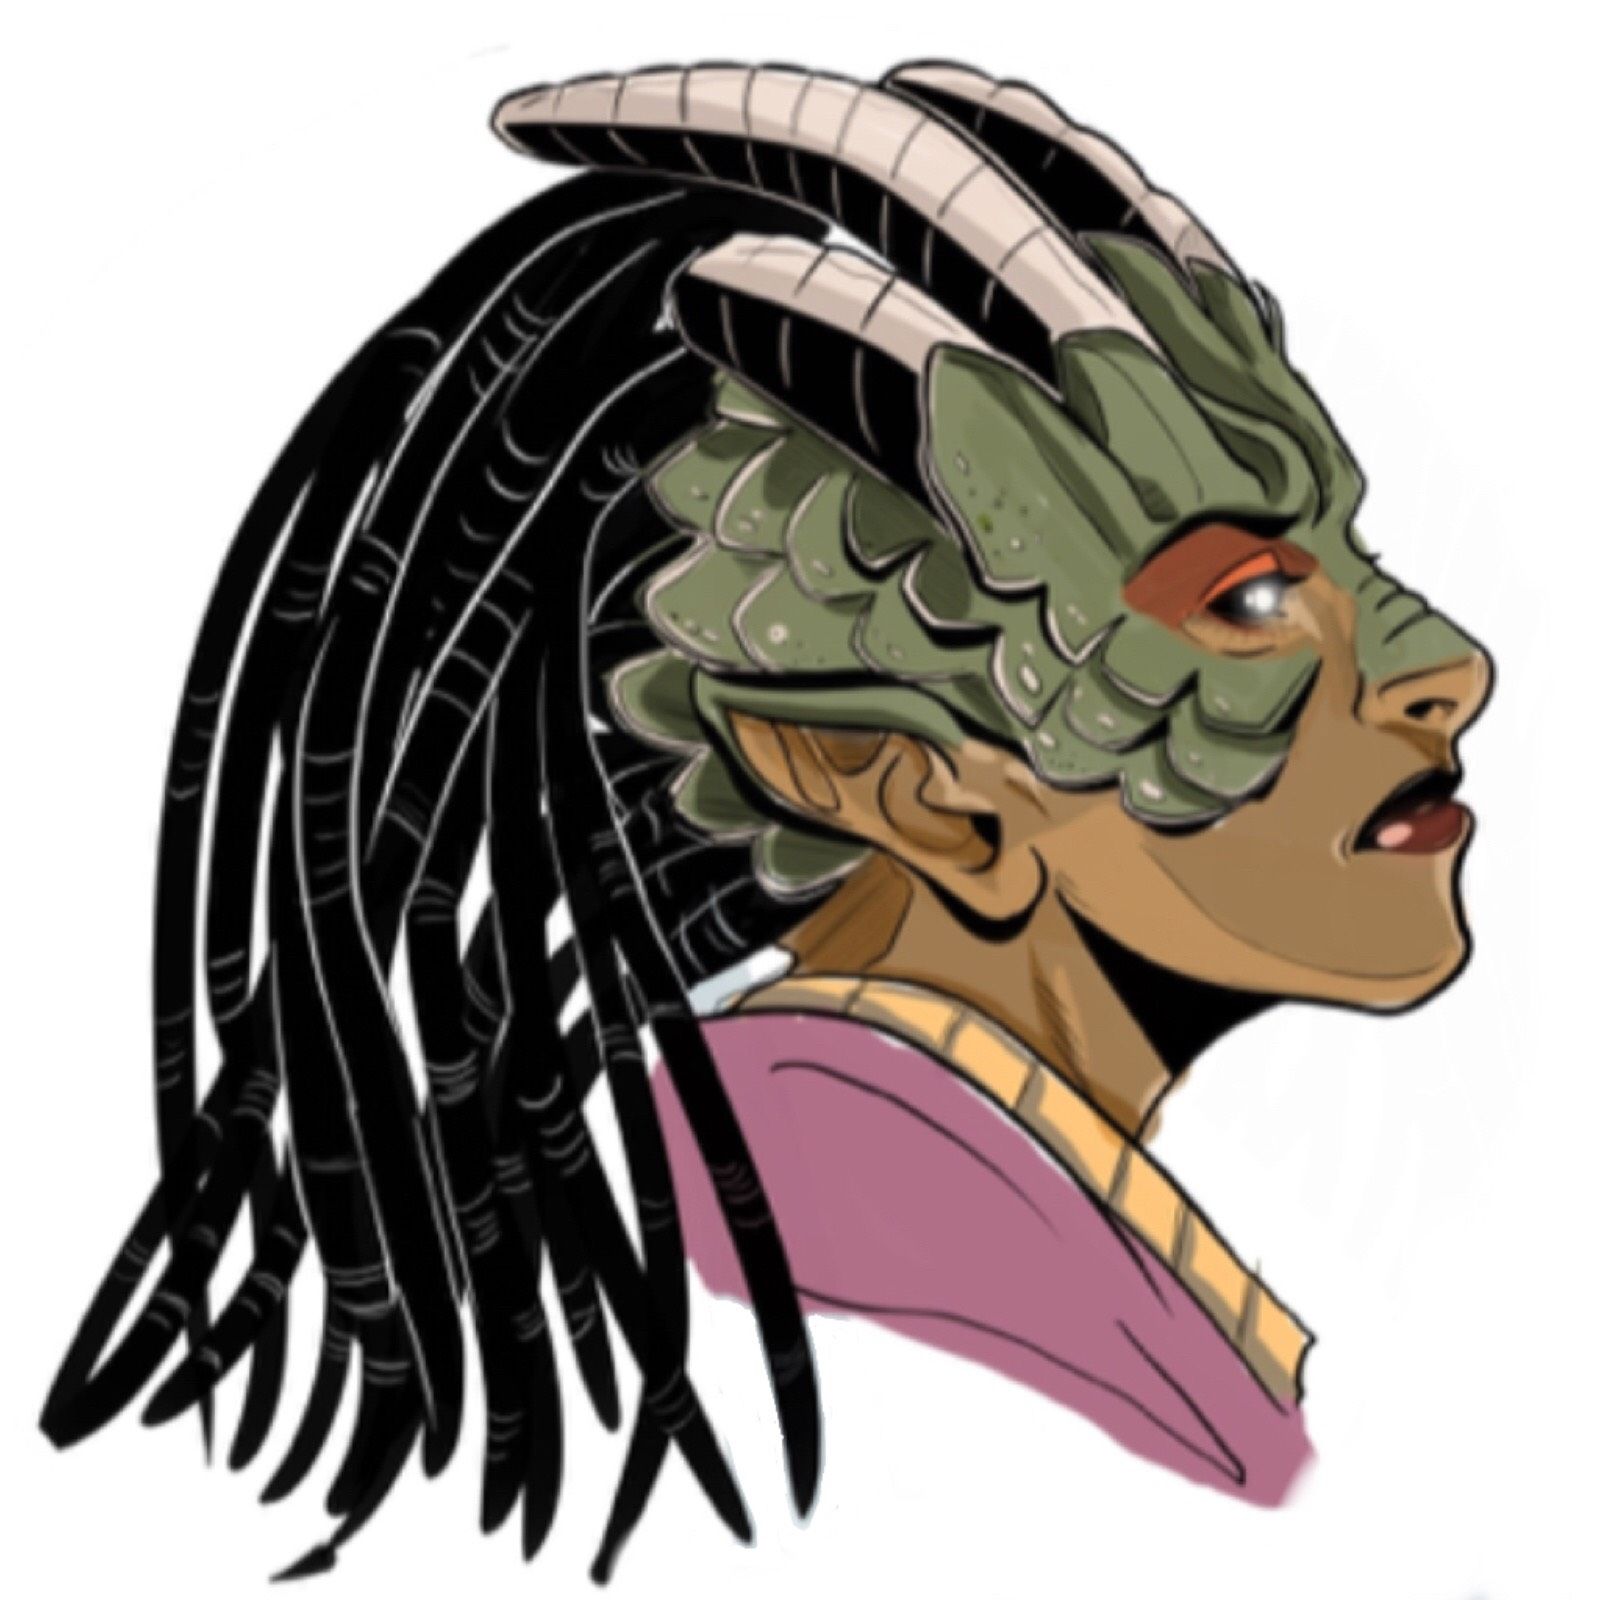 profile image of the kaiju queen